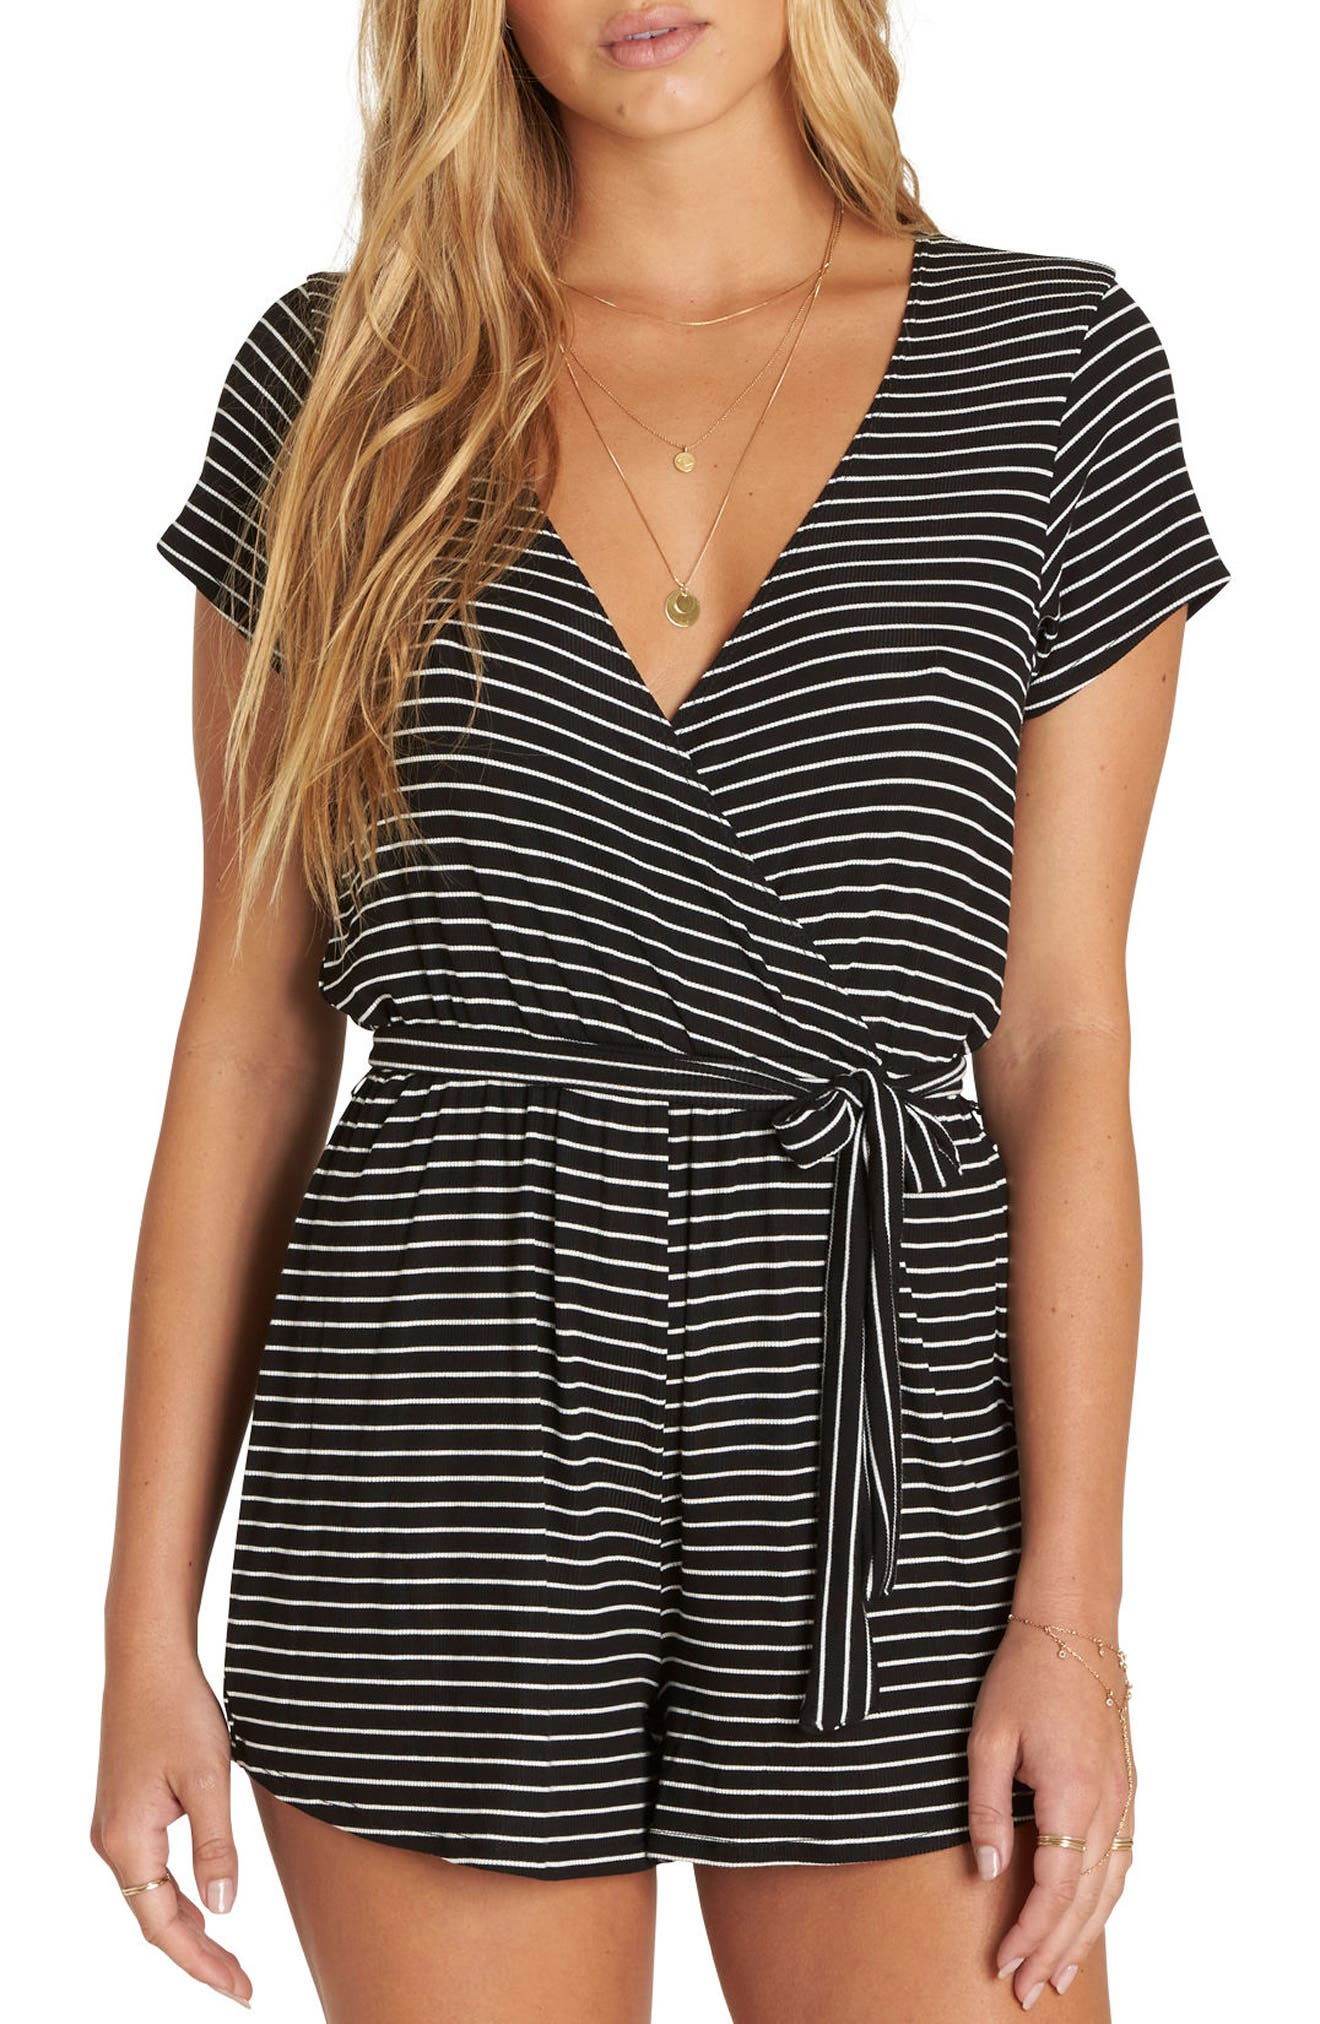 Romp Stop Stripe Surplice Romper,                             Main thumbnail 1, color,                             Black